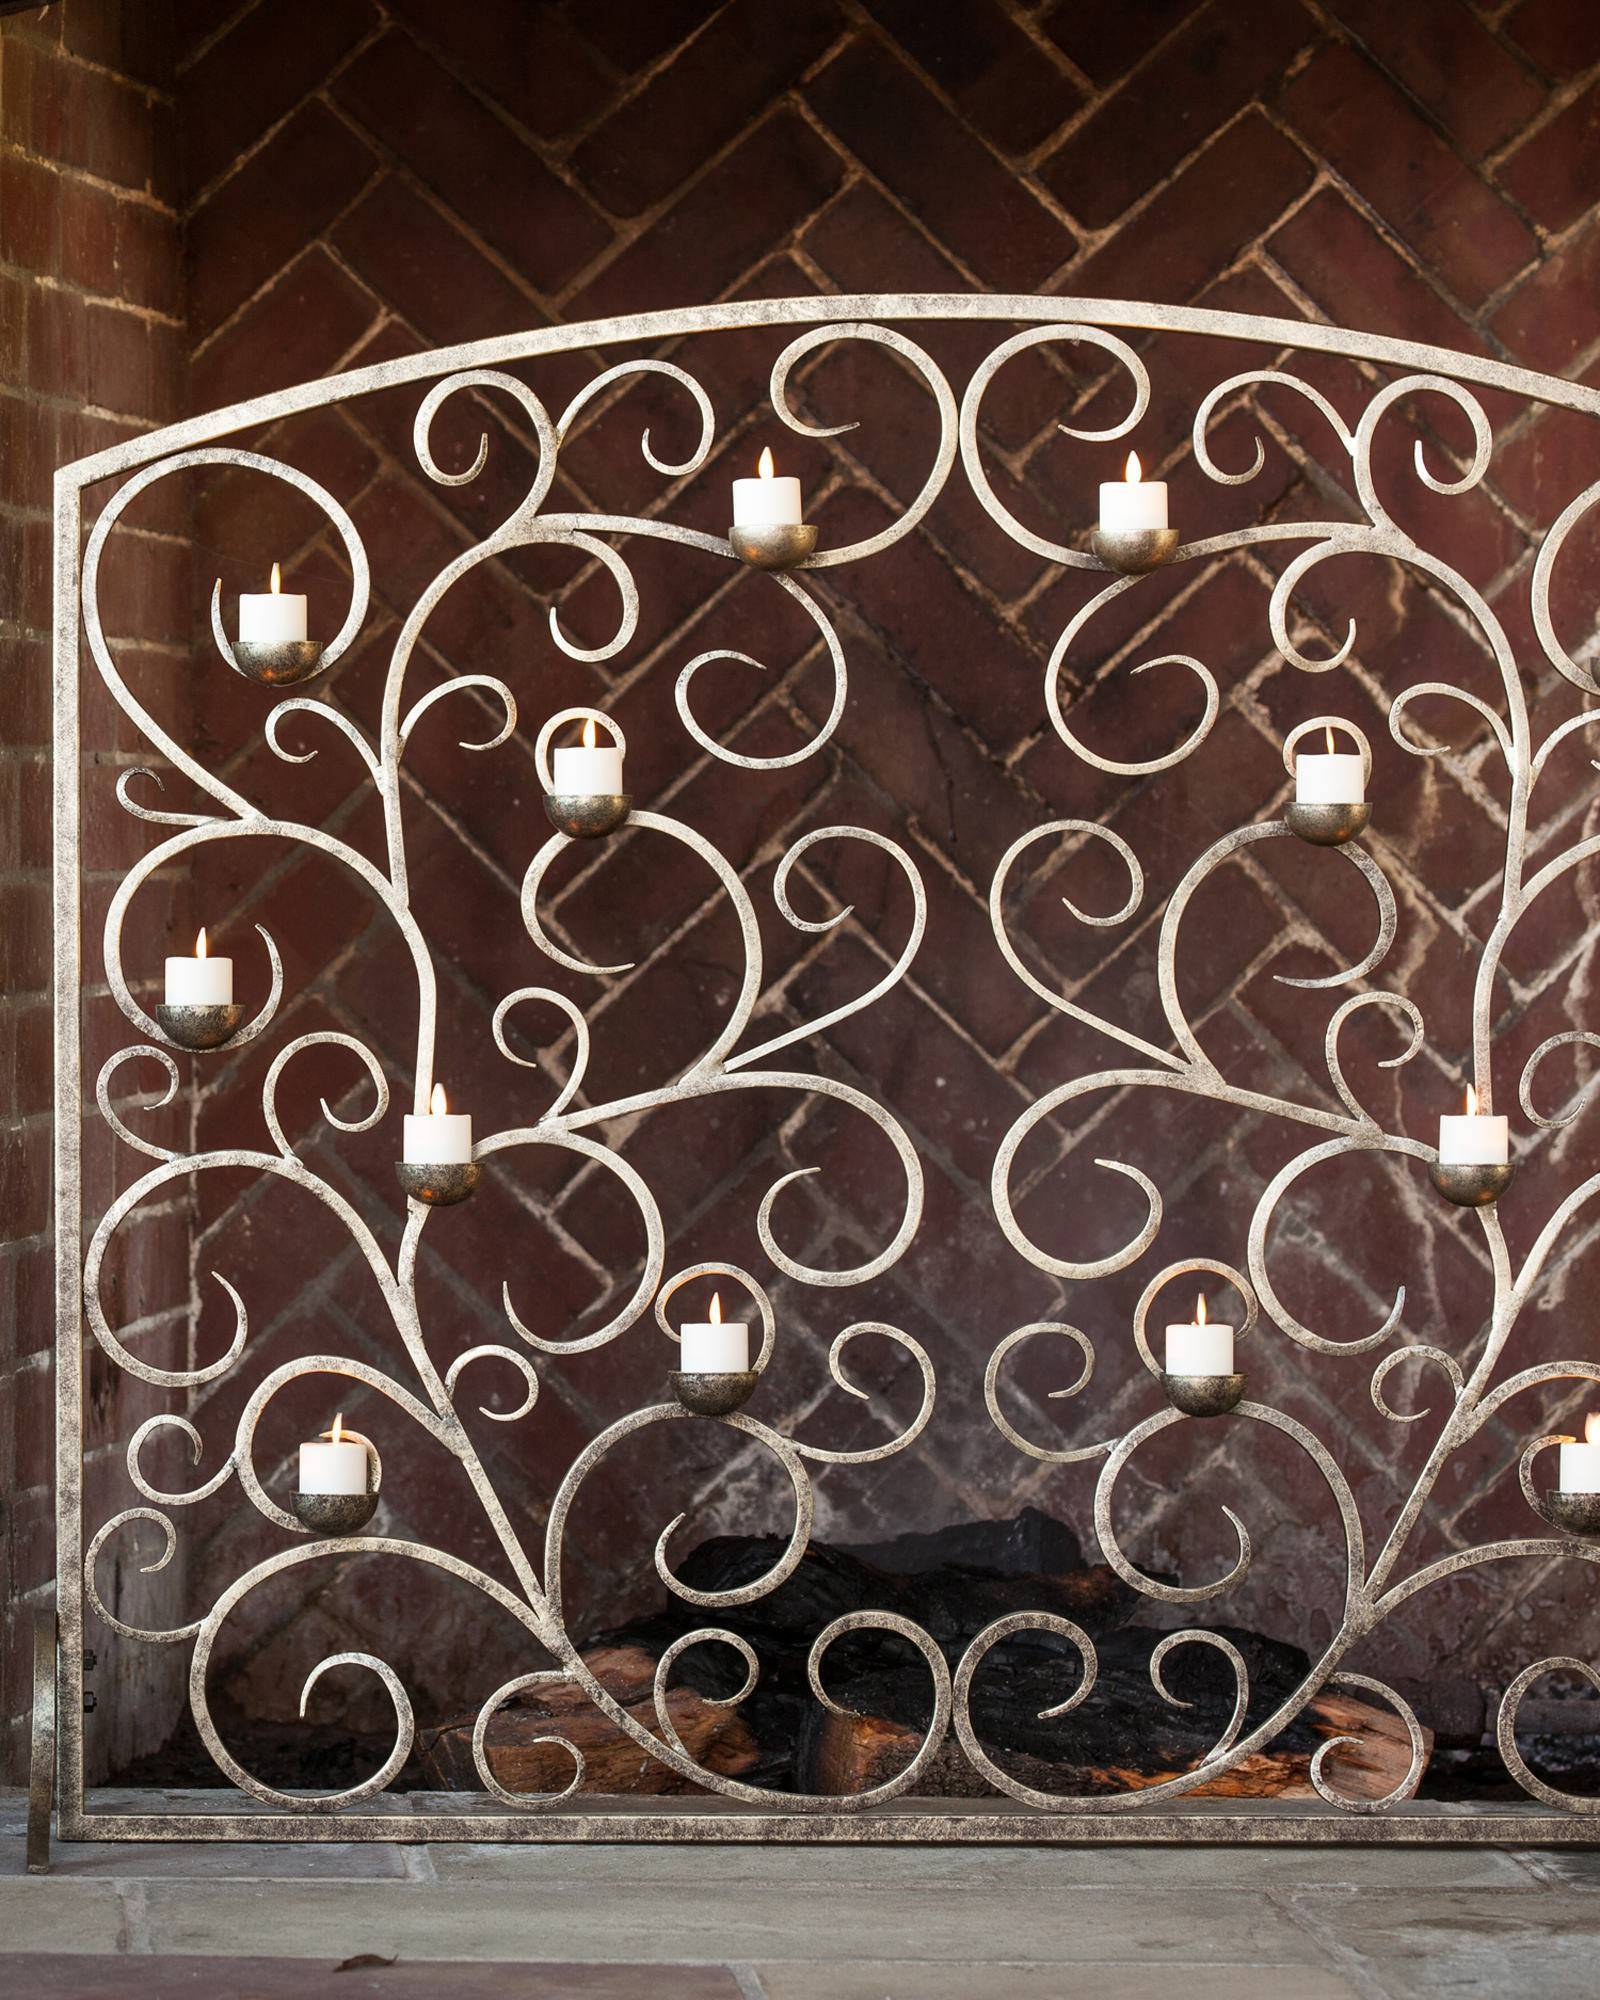 Make this decorative Tea Light Hearth Fireplace Screen the focal point of the room even during warmer seasons and enjoy flickering flames all year.